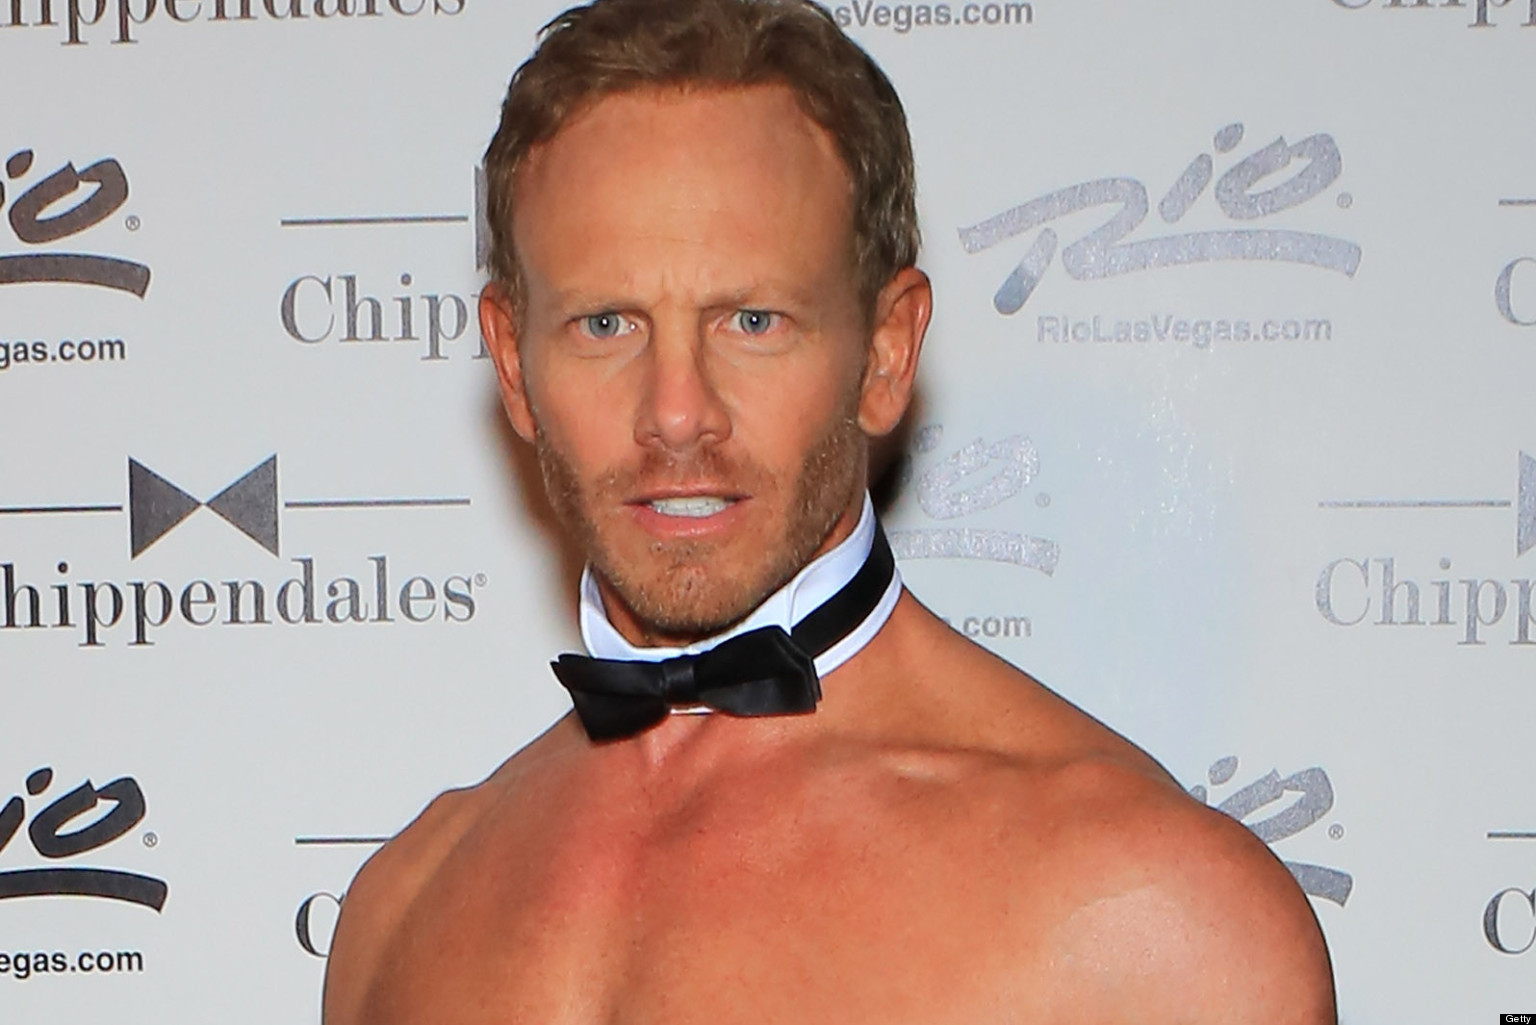 ian ziering wikipédiaian ziering 2016, ian ziering net worth, ian ziering twitter, ian ziering instagram, ian ziering 2014, ian ziering wikipédia, ian ziering, ian ziering wife, ian ziering imdb, ian ziering dancing with the stars, ian ziering 90210, ian ziering sharknado, ian ziering 2015, ian ziering celebrity apprentice, ian ziering net worth 2015, ian ziering chippendales, ian ziering hair, ian ziering cheryl burke, ian ziering net worth 2014, ian ziering shirtless